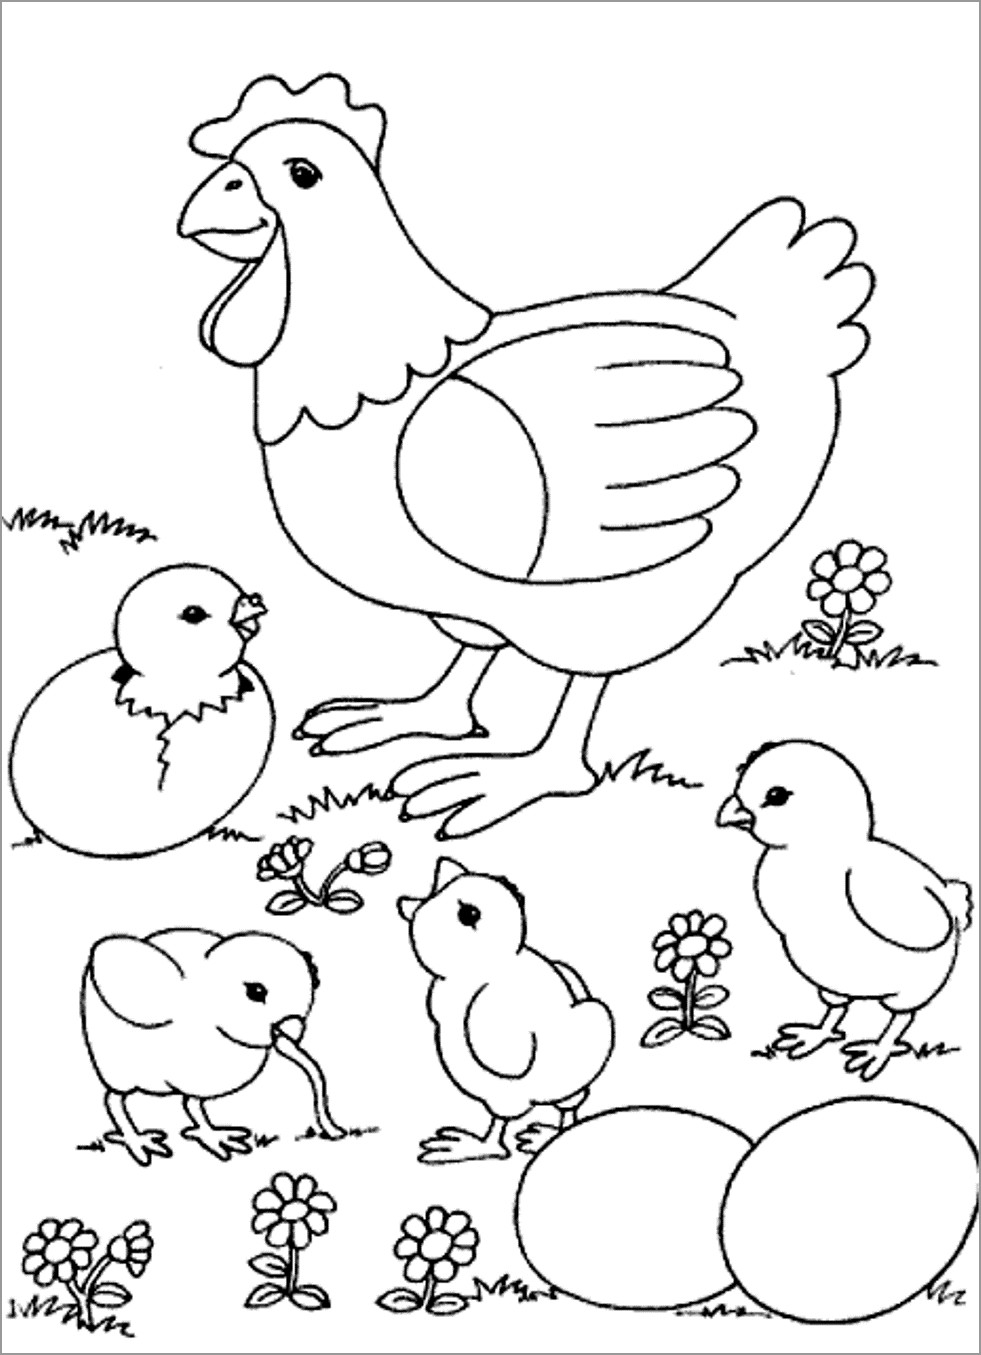 Printable Chick Coloring Page for Kids